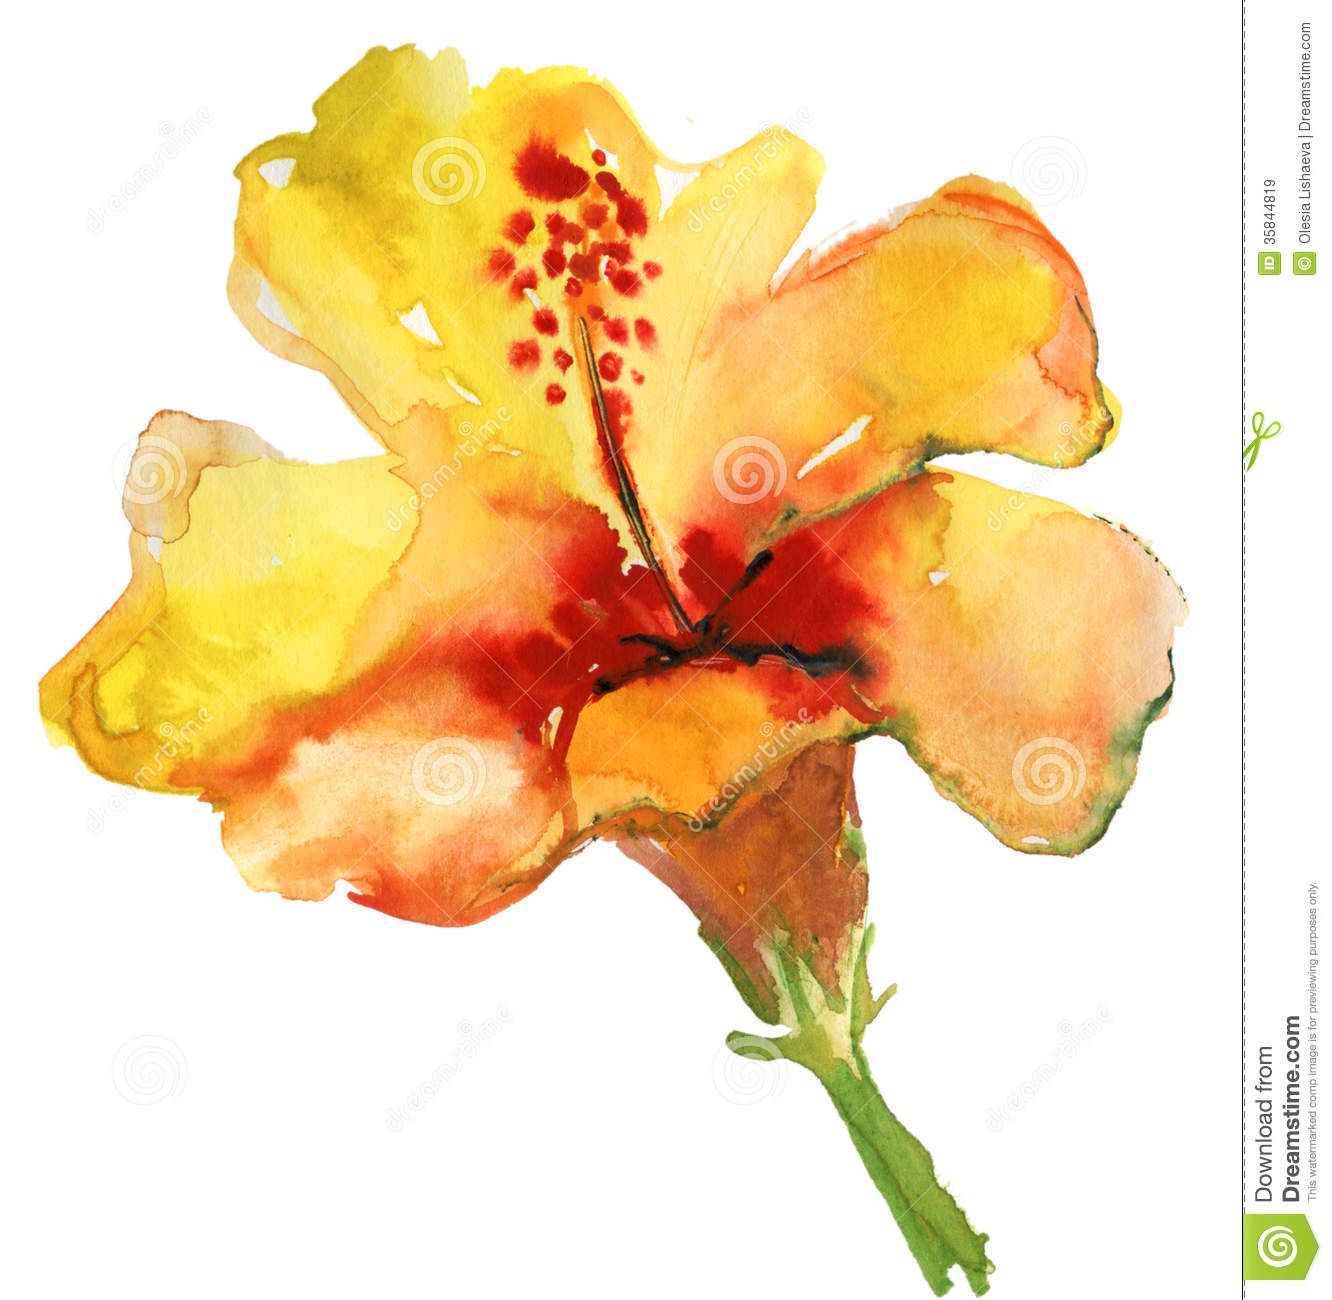 Watercolor yellow hibiscus royalty free stock images image watercolor yellow hibiscus royalty free stock images image 35844819 izmirmasajfo